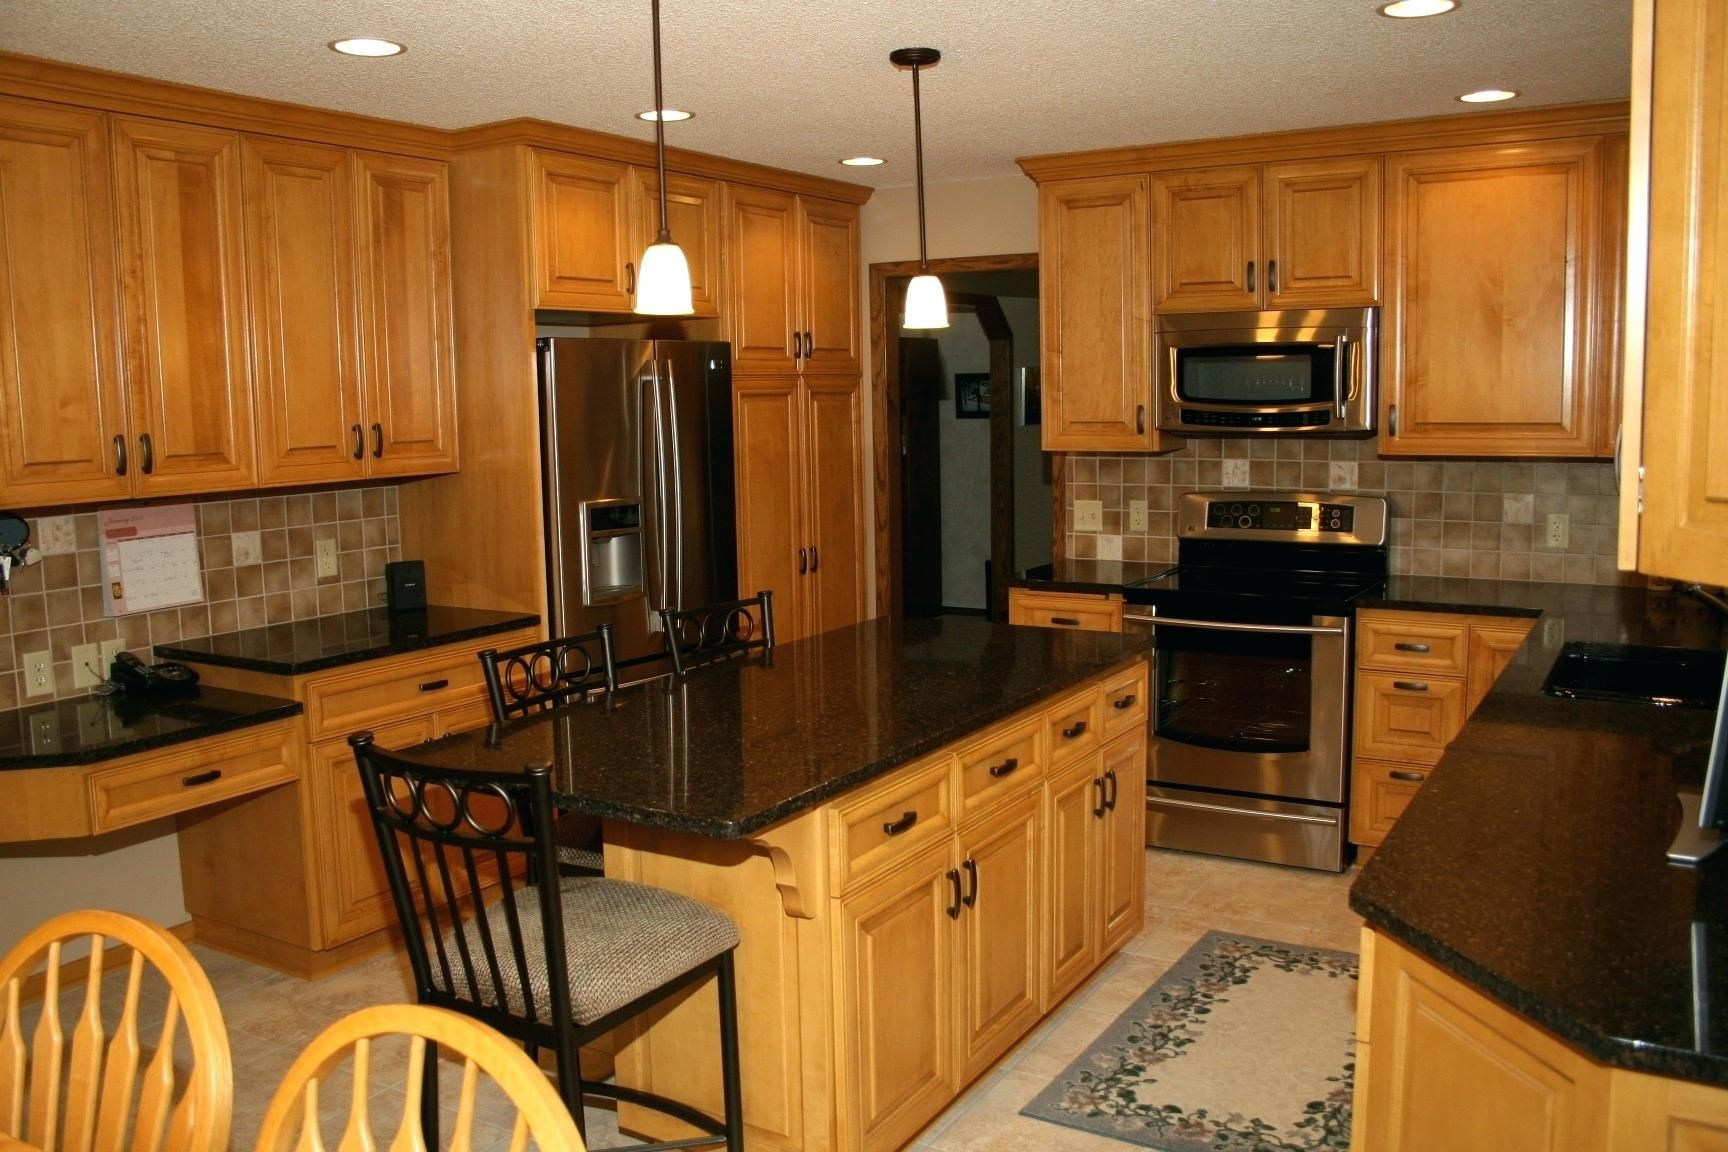 Kitchen Remodel Idea With Honey Oak Cabinets Using Black Granite Countertops And Stainless Appliances Jpg Maple Kitchen Cabinets Oak Kitchen Honey Oak Cabinets